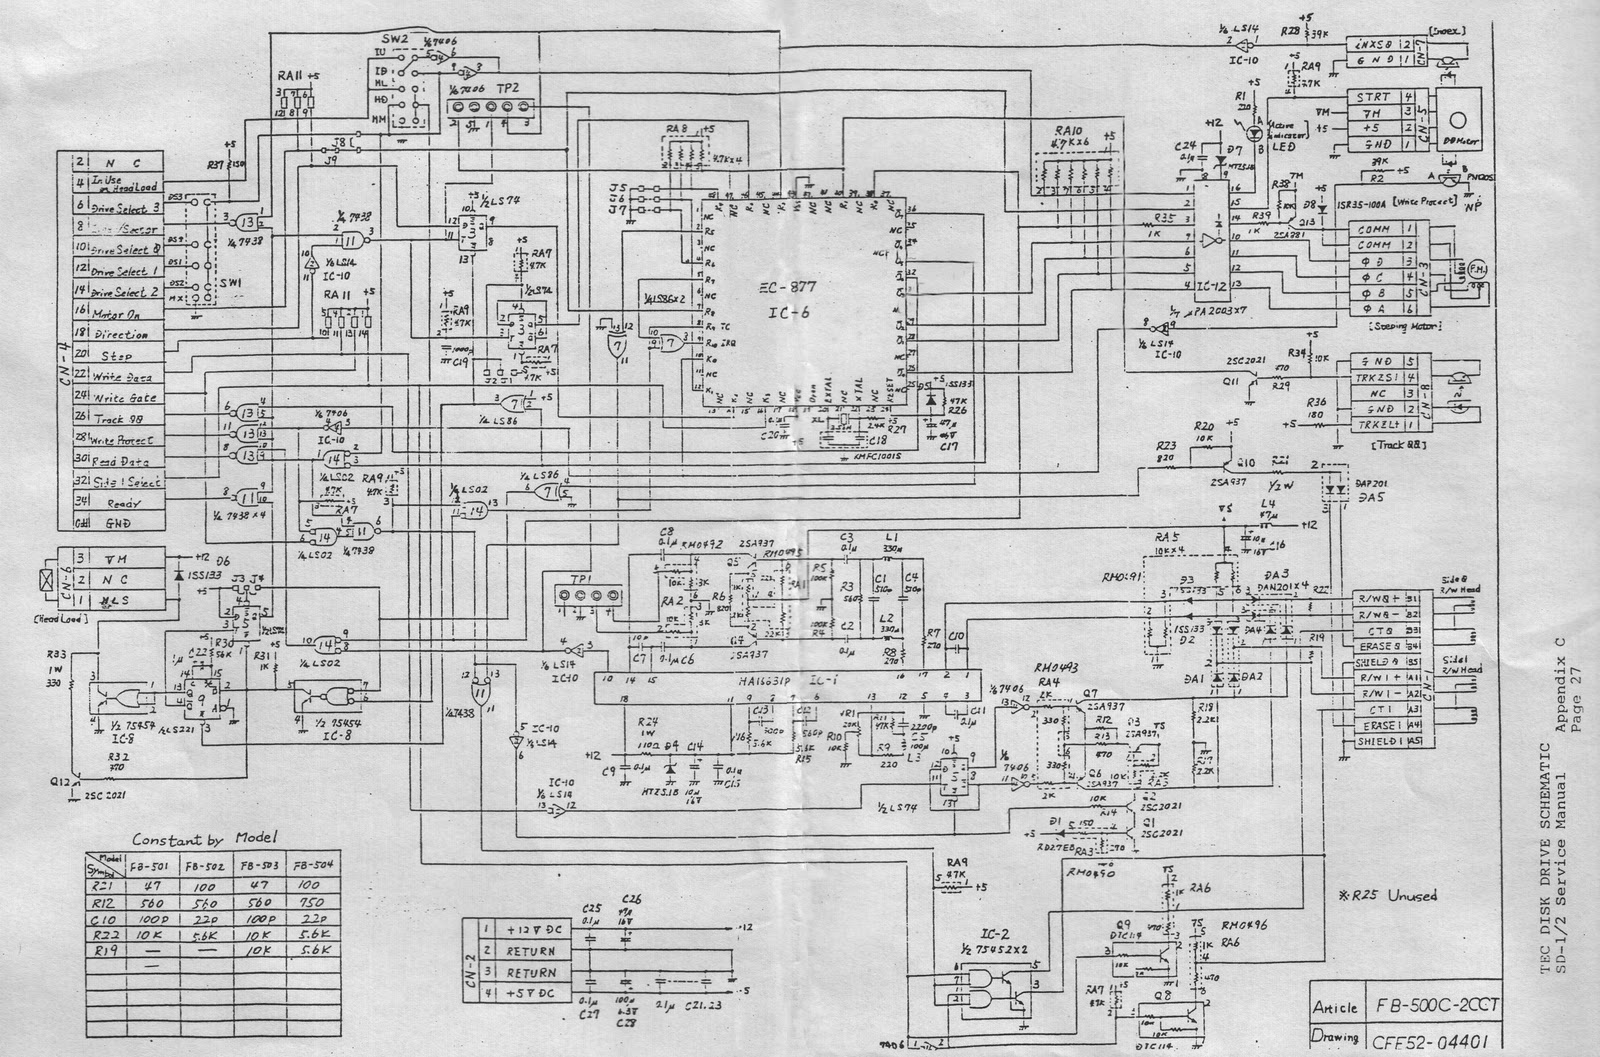 msd_mech generation commodore 64 pg drives technology s drive wiring diagram at fashall.co